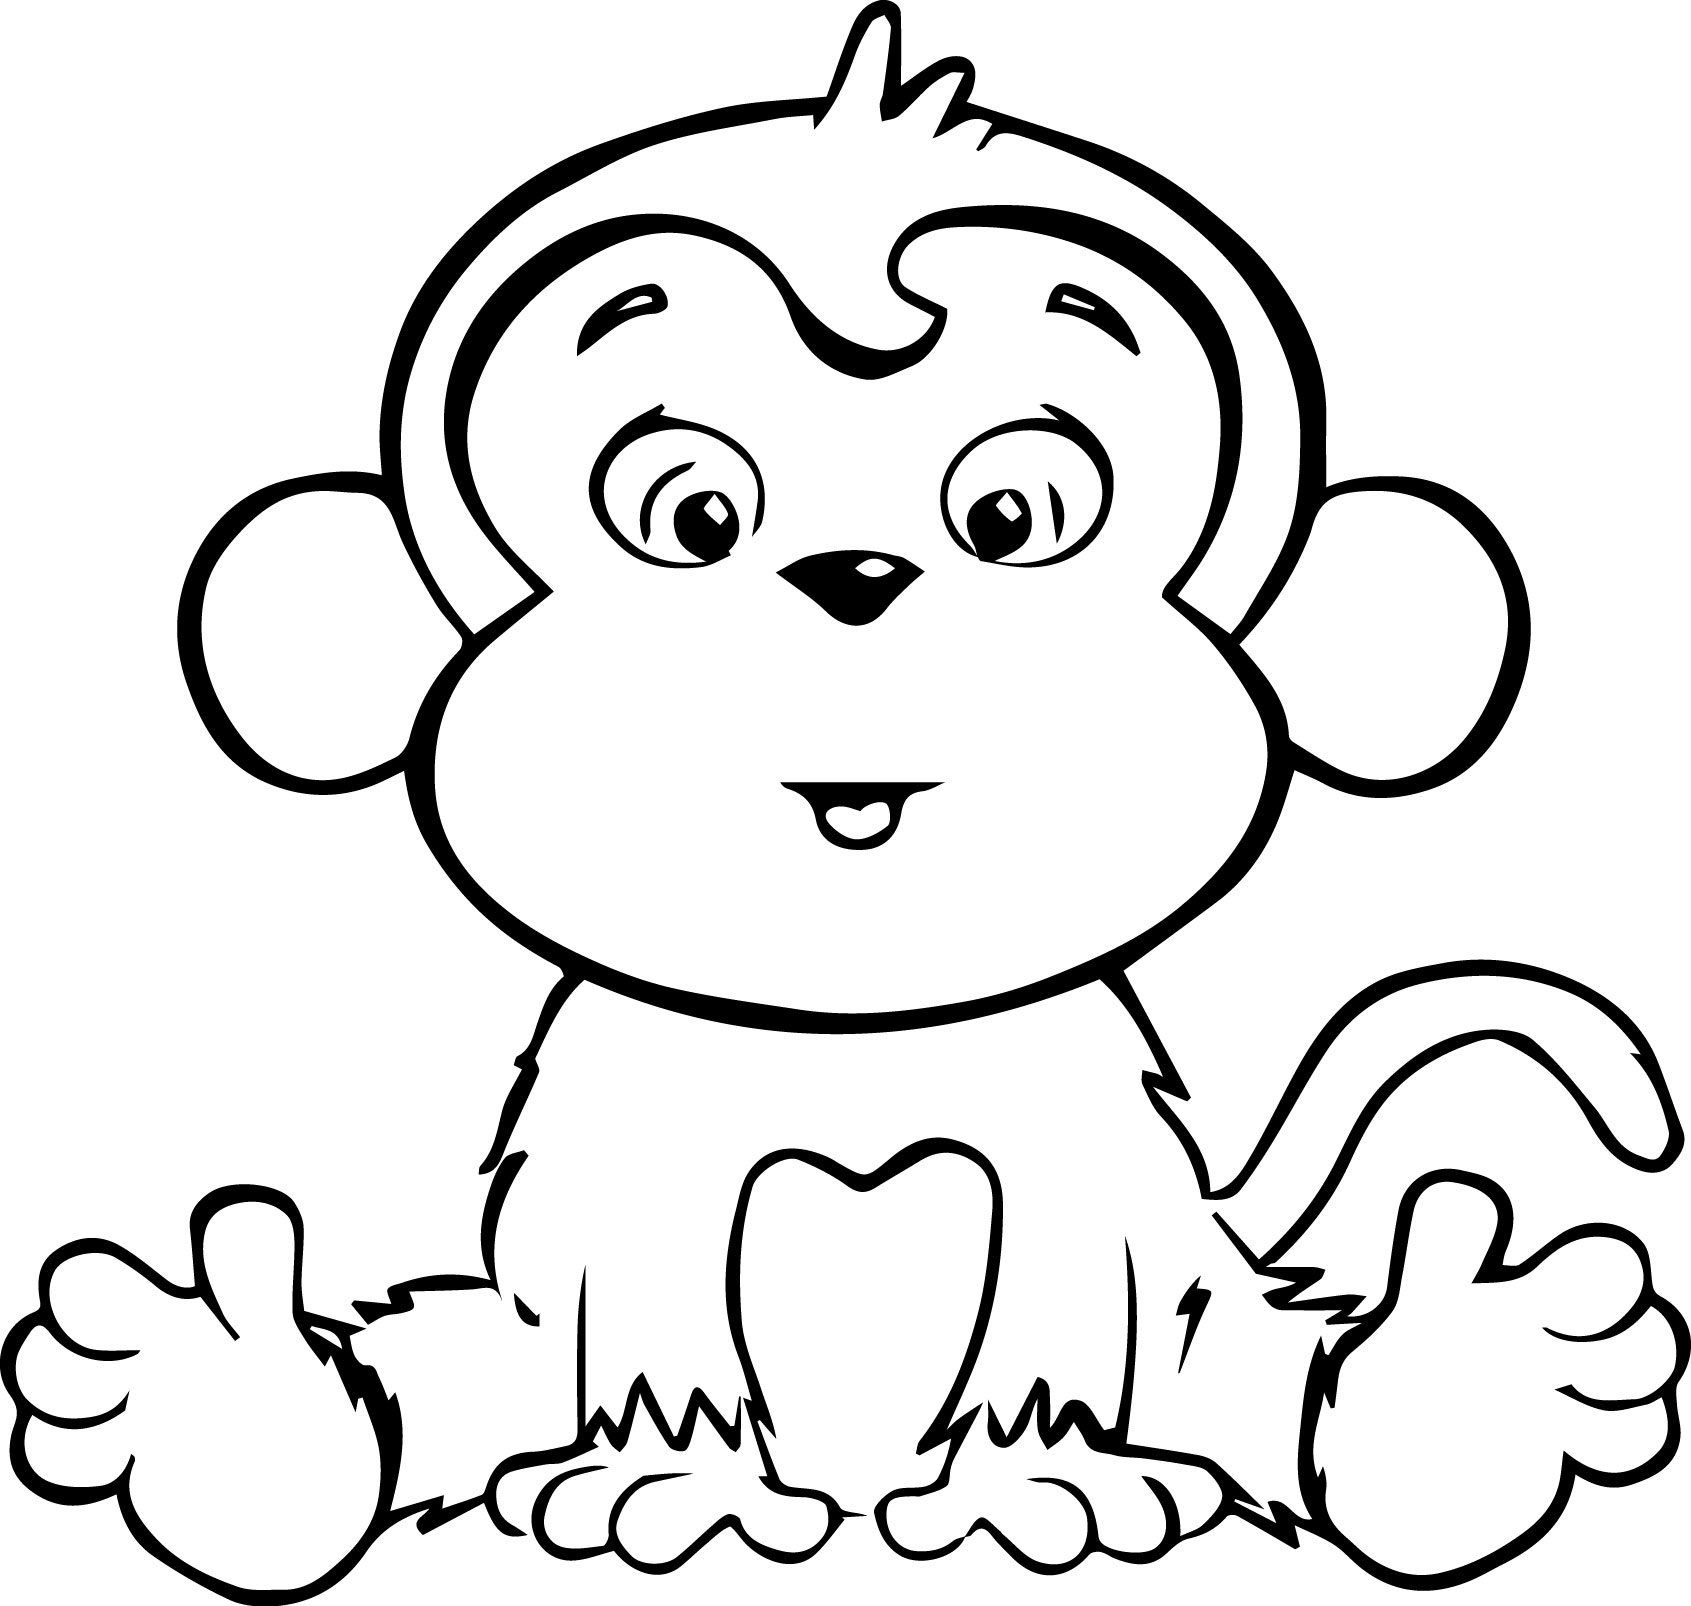 1691x1606 Cartoon Coloring Pages